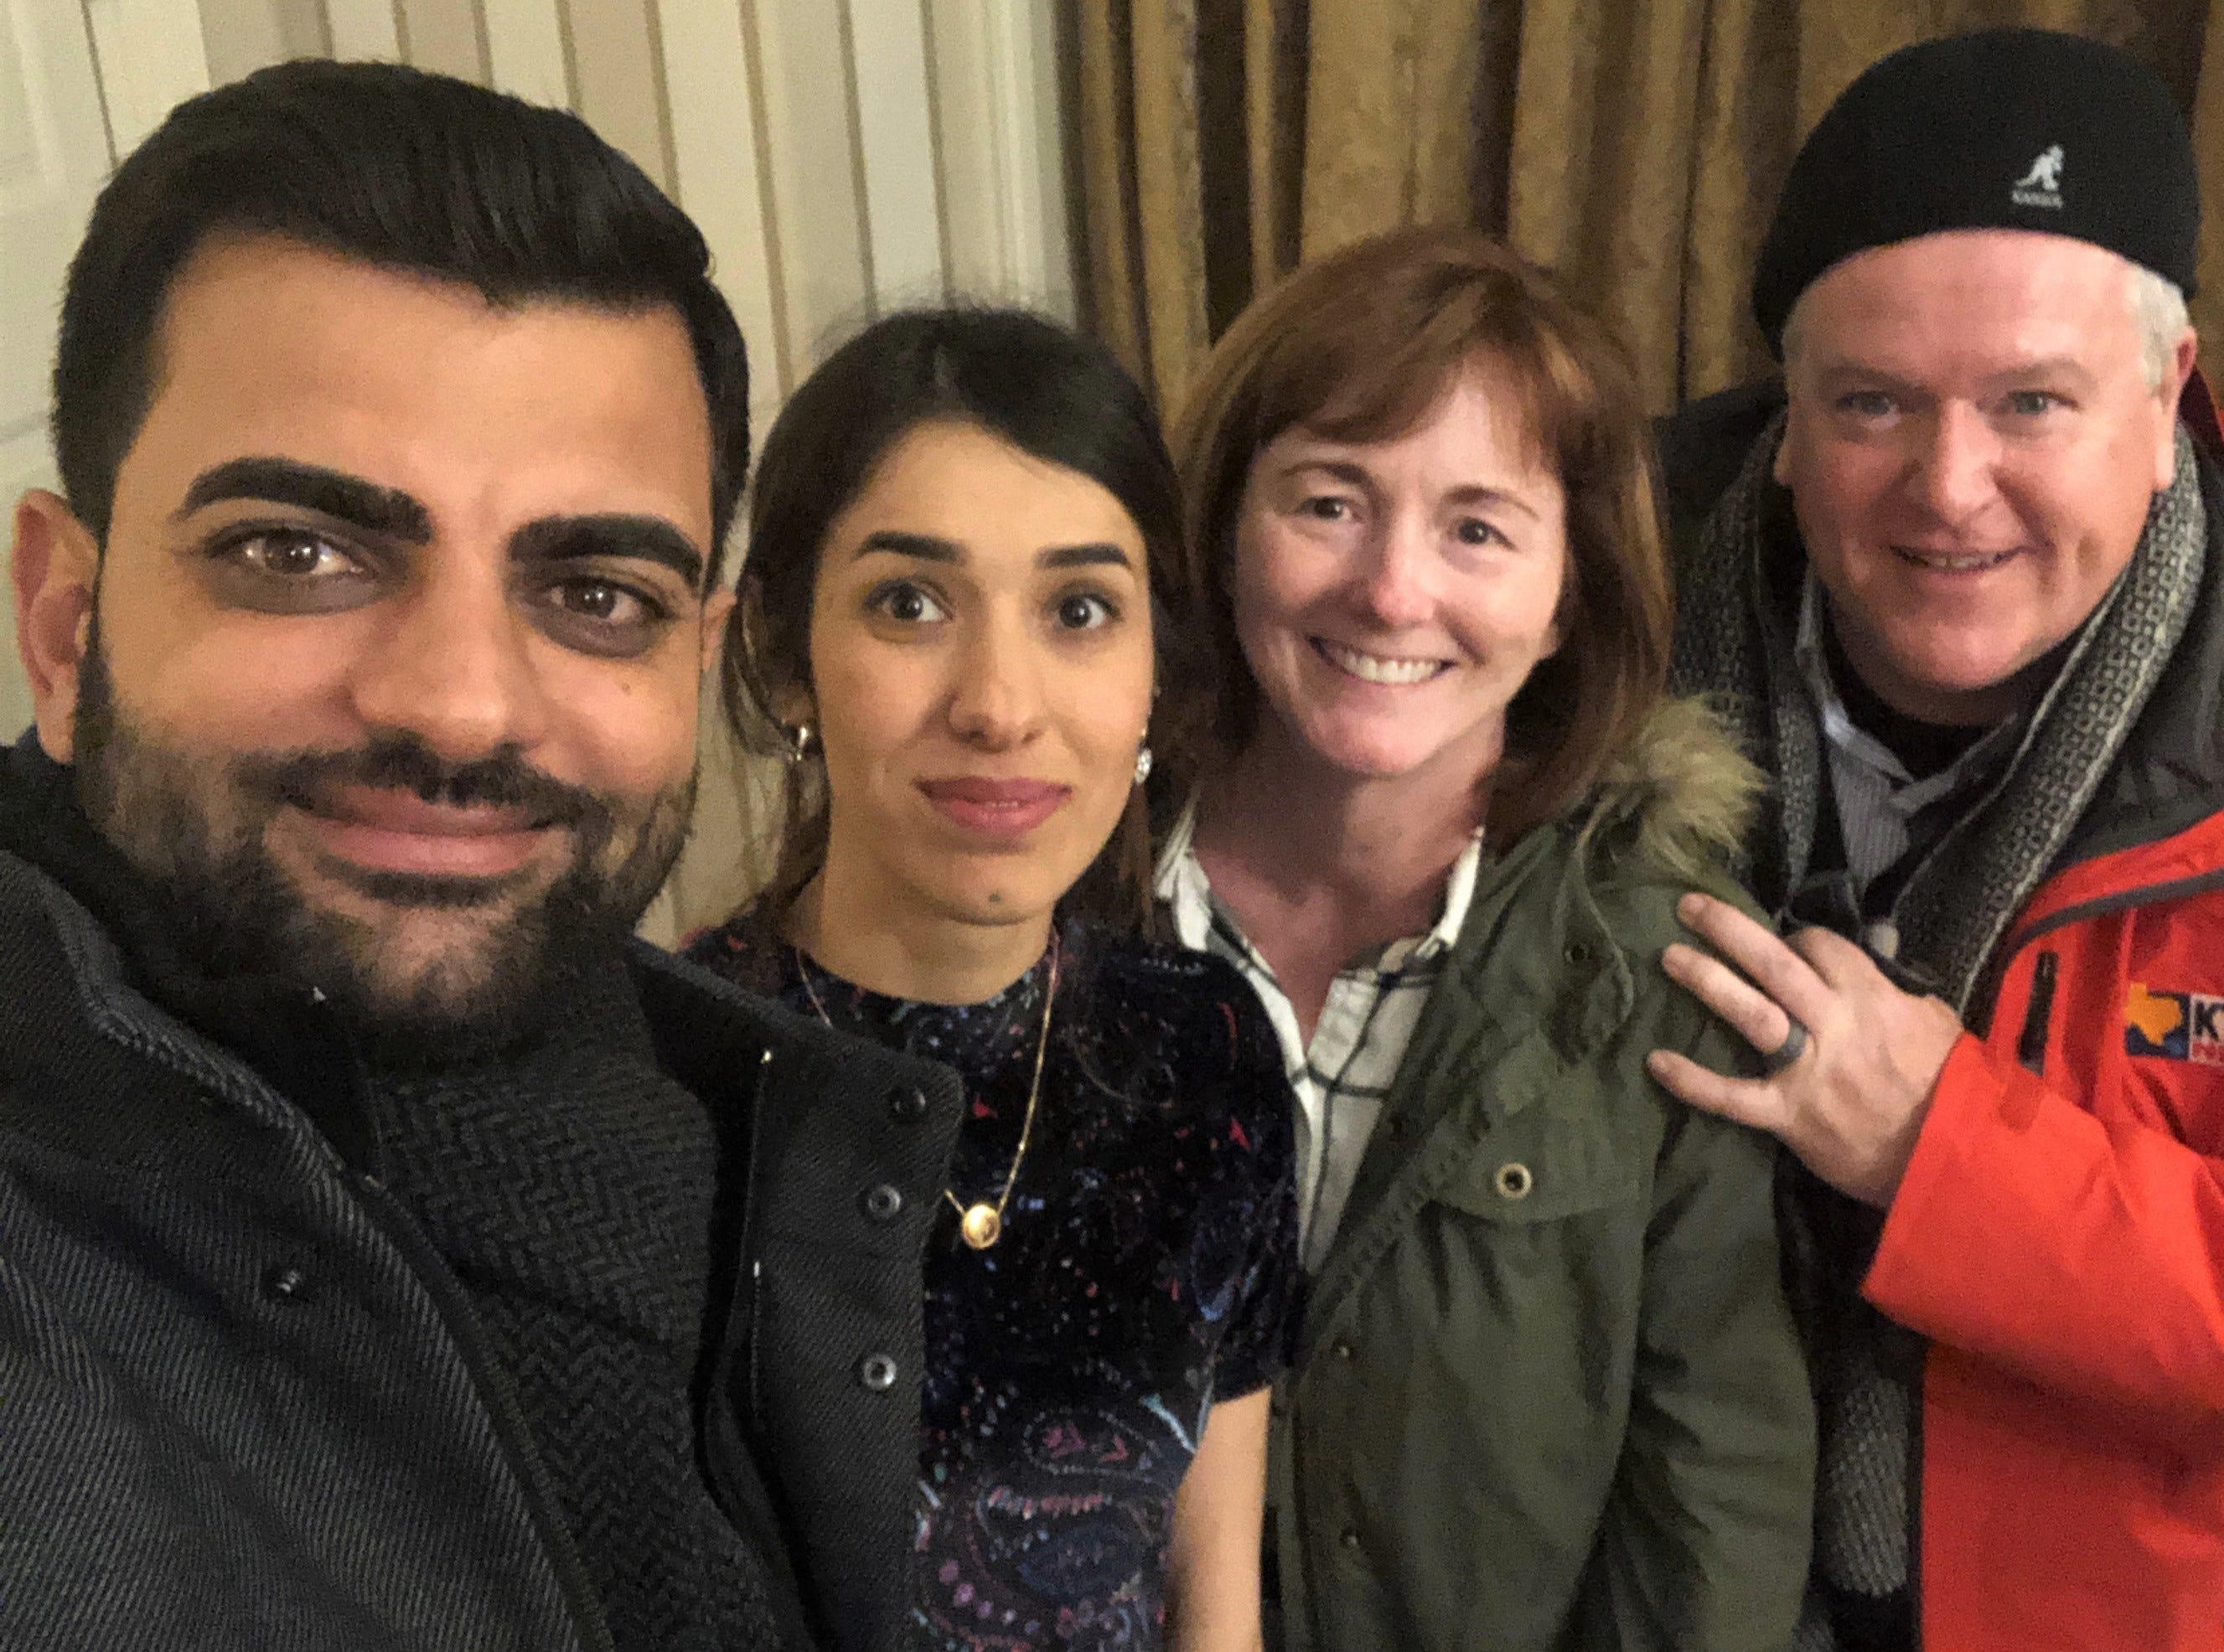 From left, Abid Shamdeen, Nadia Murad, Suzanne Sims and Danny Sims take a selfie Sunday in Oslo, Norway, where Murad on Monday was honored as co-recipient of the 2018 Nobel Peace Prize. The Simses, of Abilene, were guests of Murad, who spoke in Abilene in April 2017 at the Paramount Theatre. She now is married to Shamdeen. African physician Denis Mukwege shared the prize with Murad.